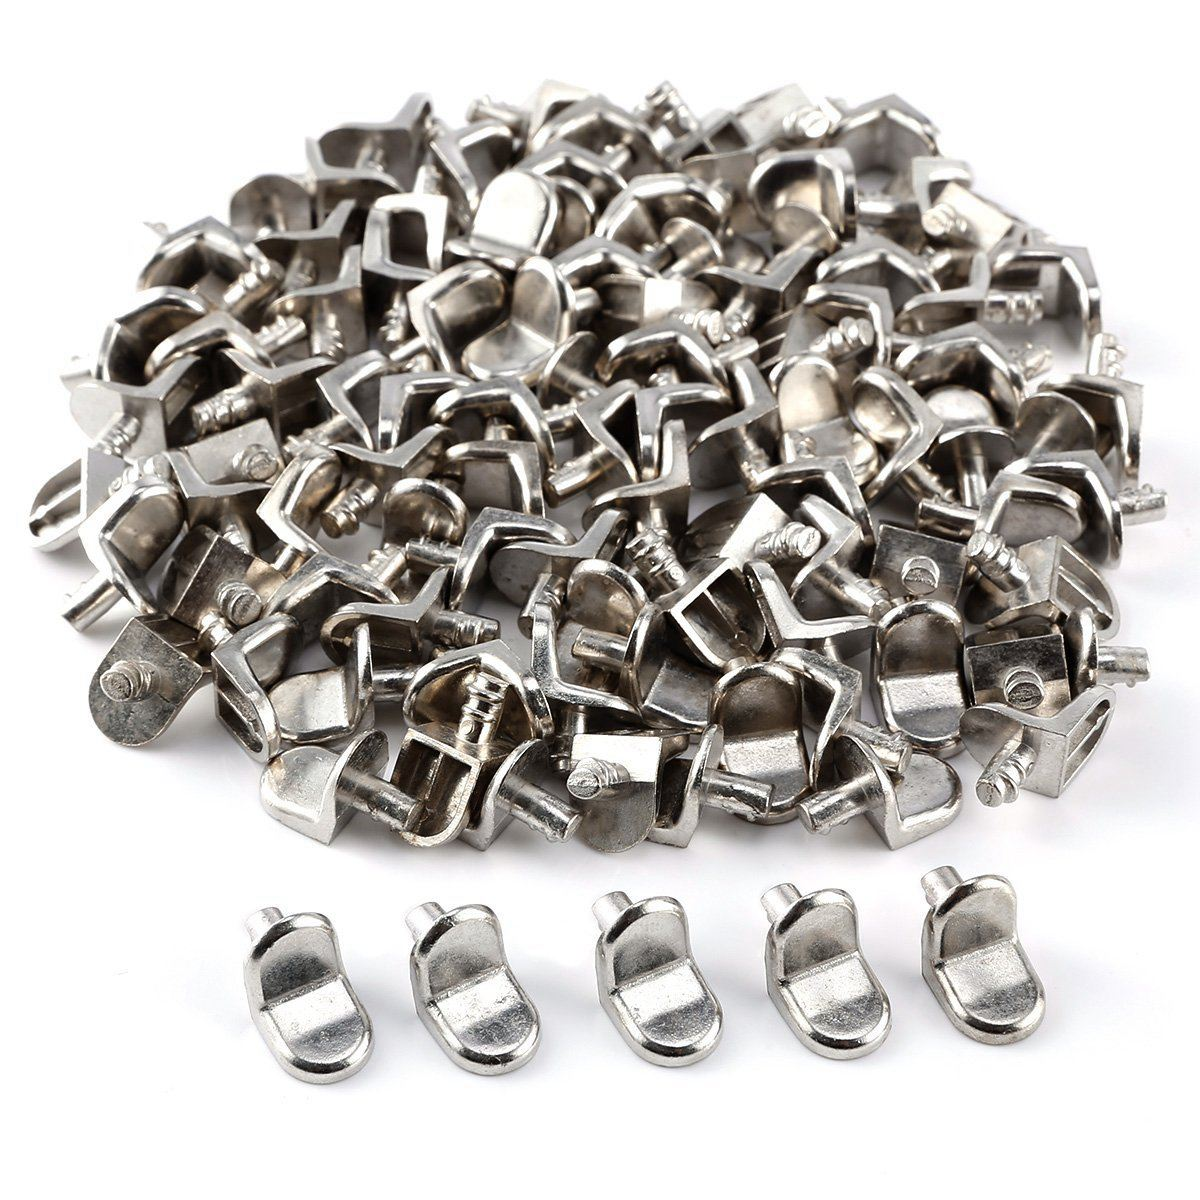 100pcs Claws Holder Cleats Shelves Holder For Plate Glass Panel Or Wood Kitchen Cupboard